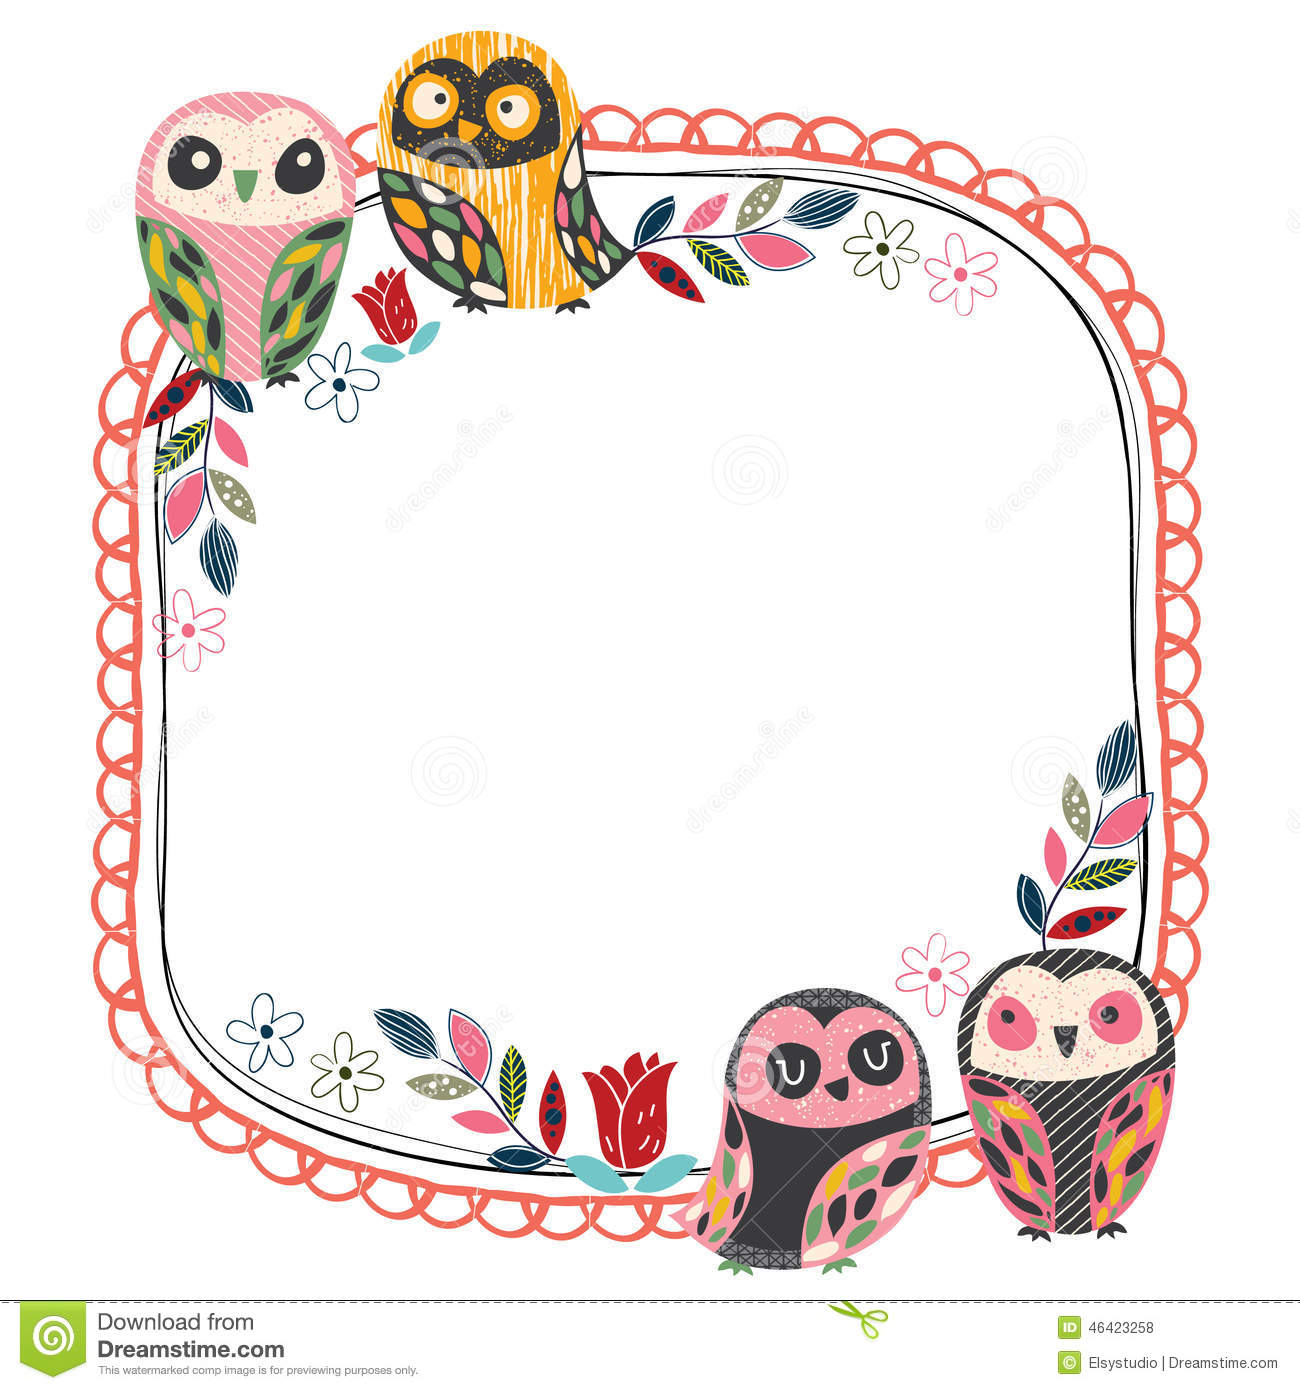 Vintage Owl Frame Layout 1 Stock Vector - Image: 46423258